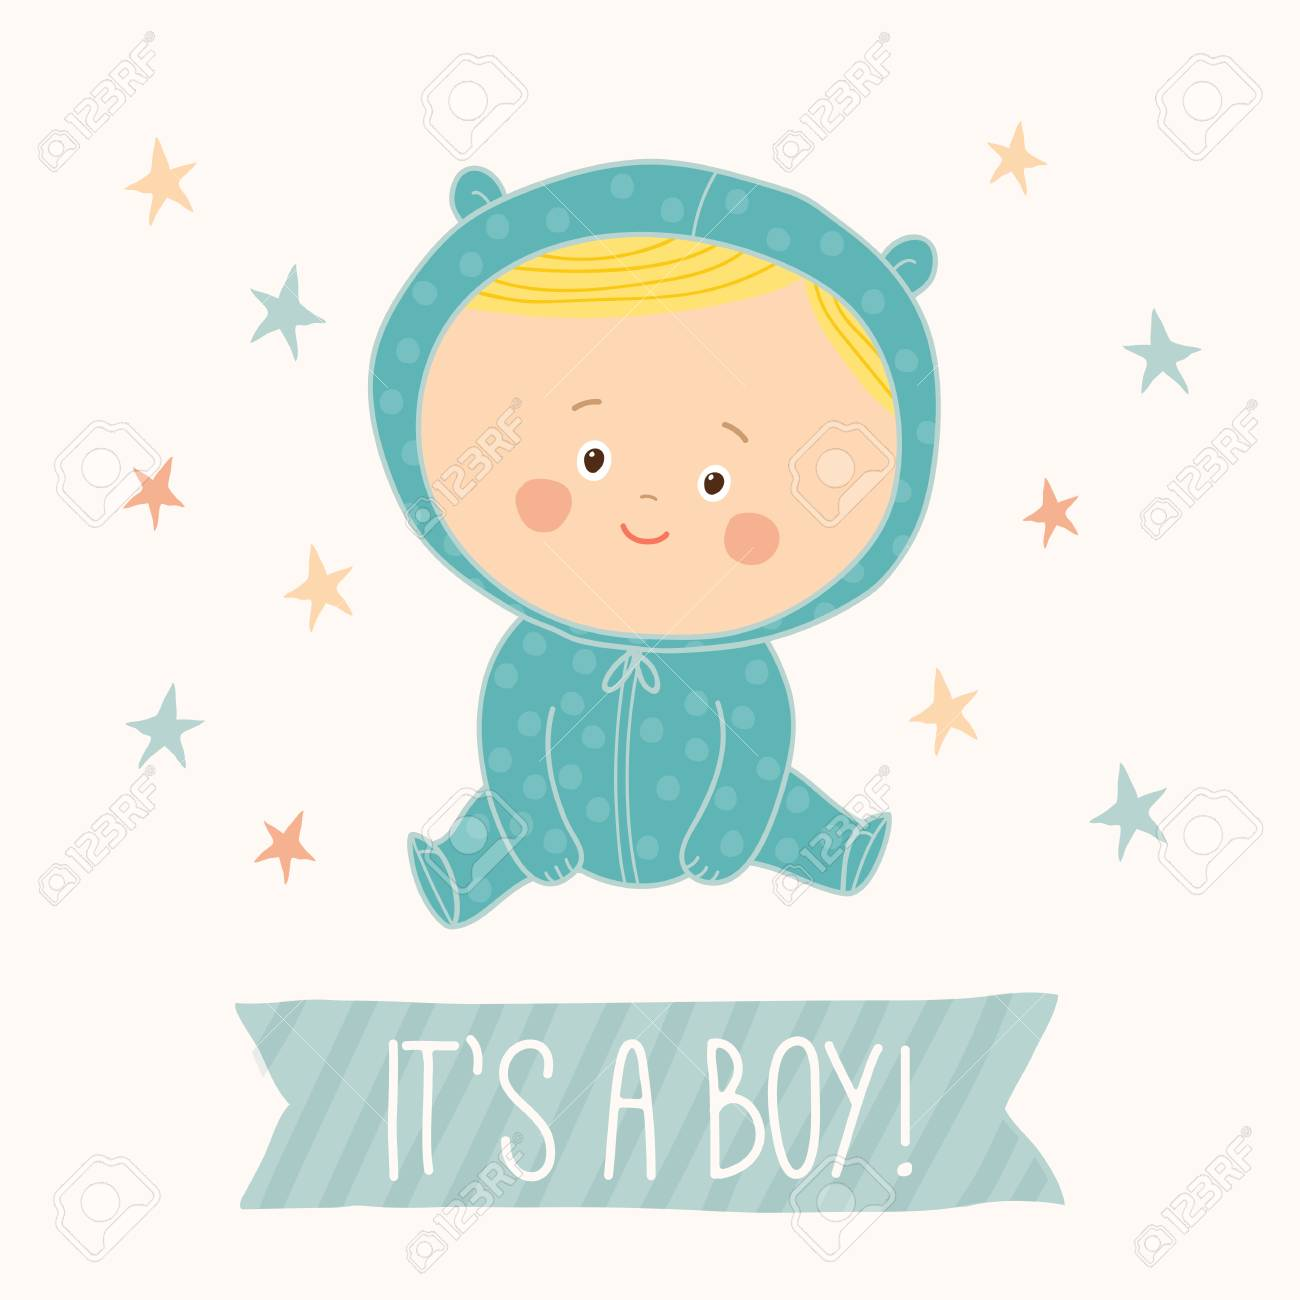 Baby Shower Card For Baby Boy Cute Baby Boy Sitting Blond Toddler